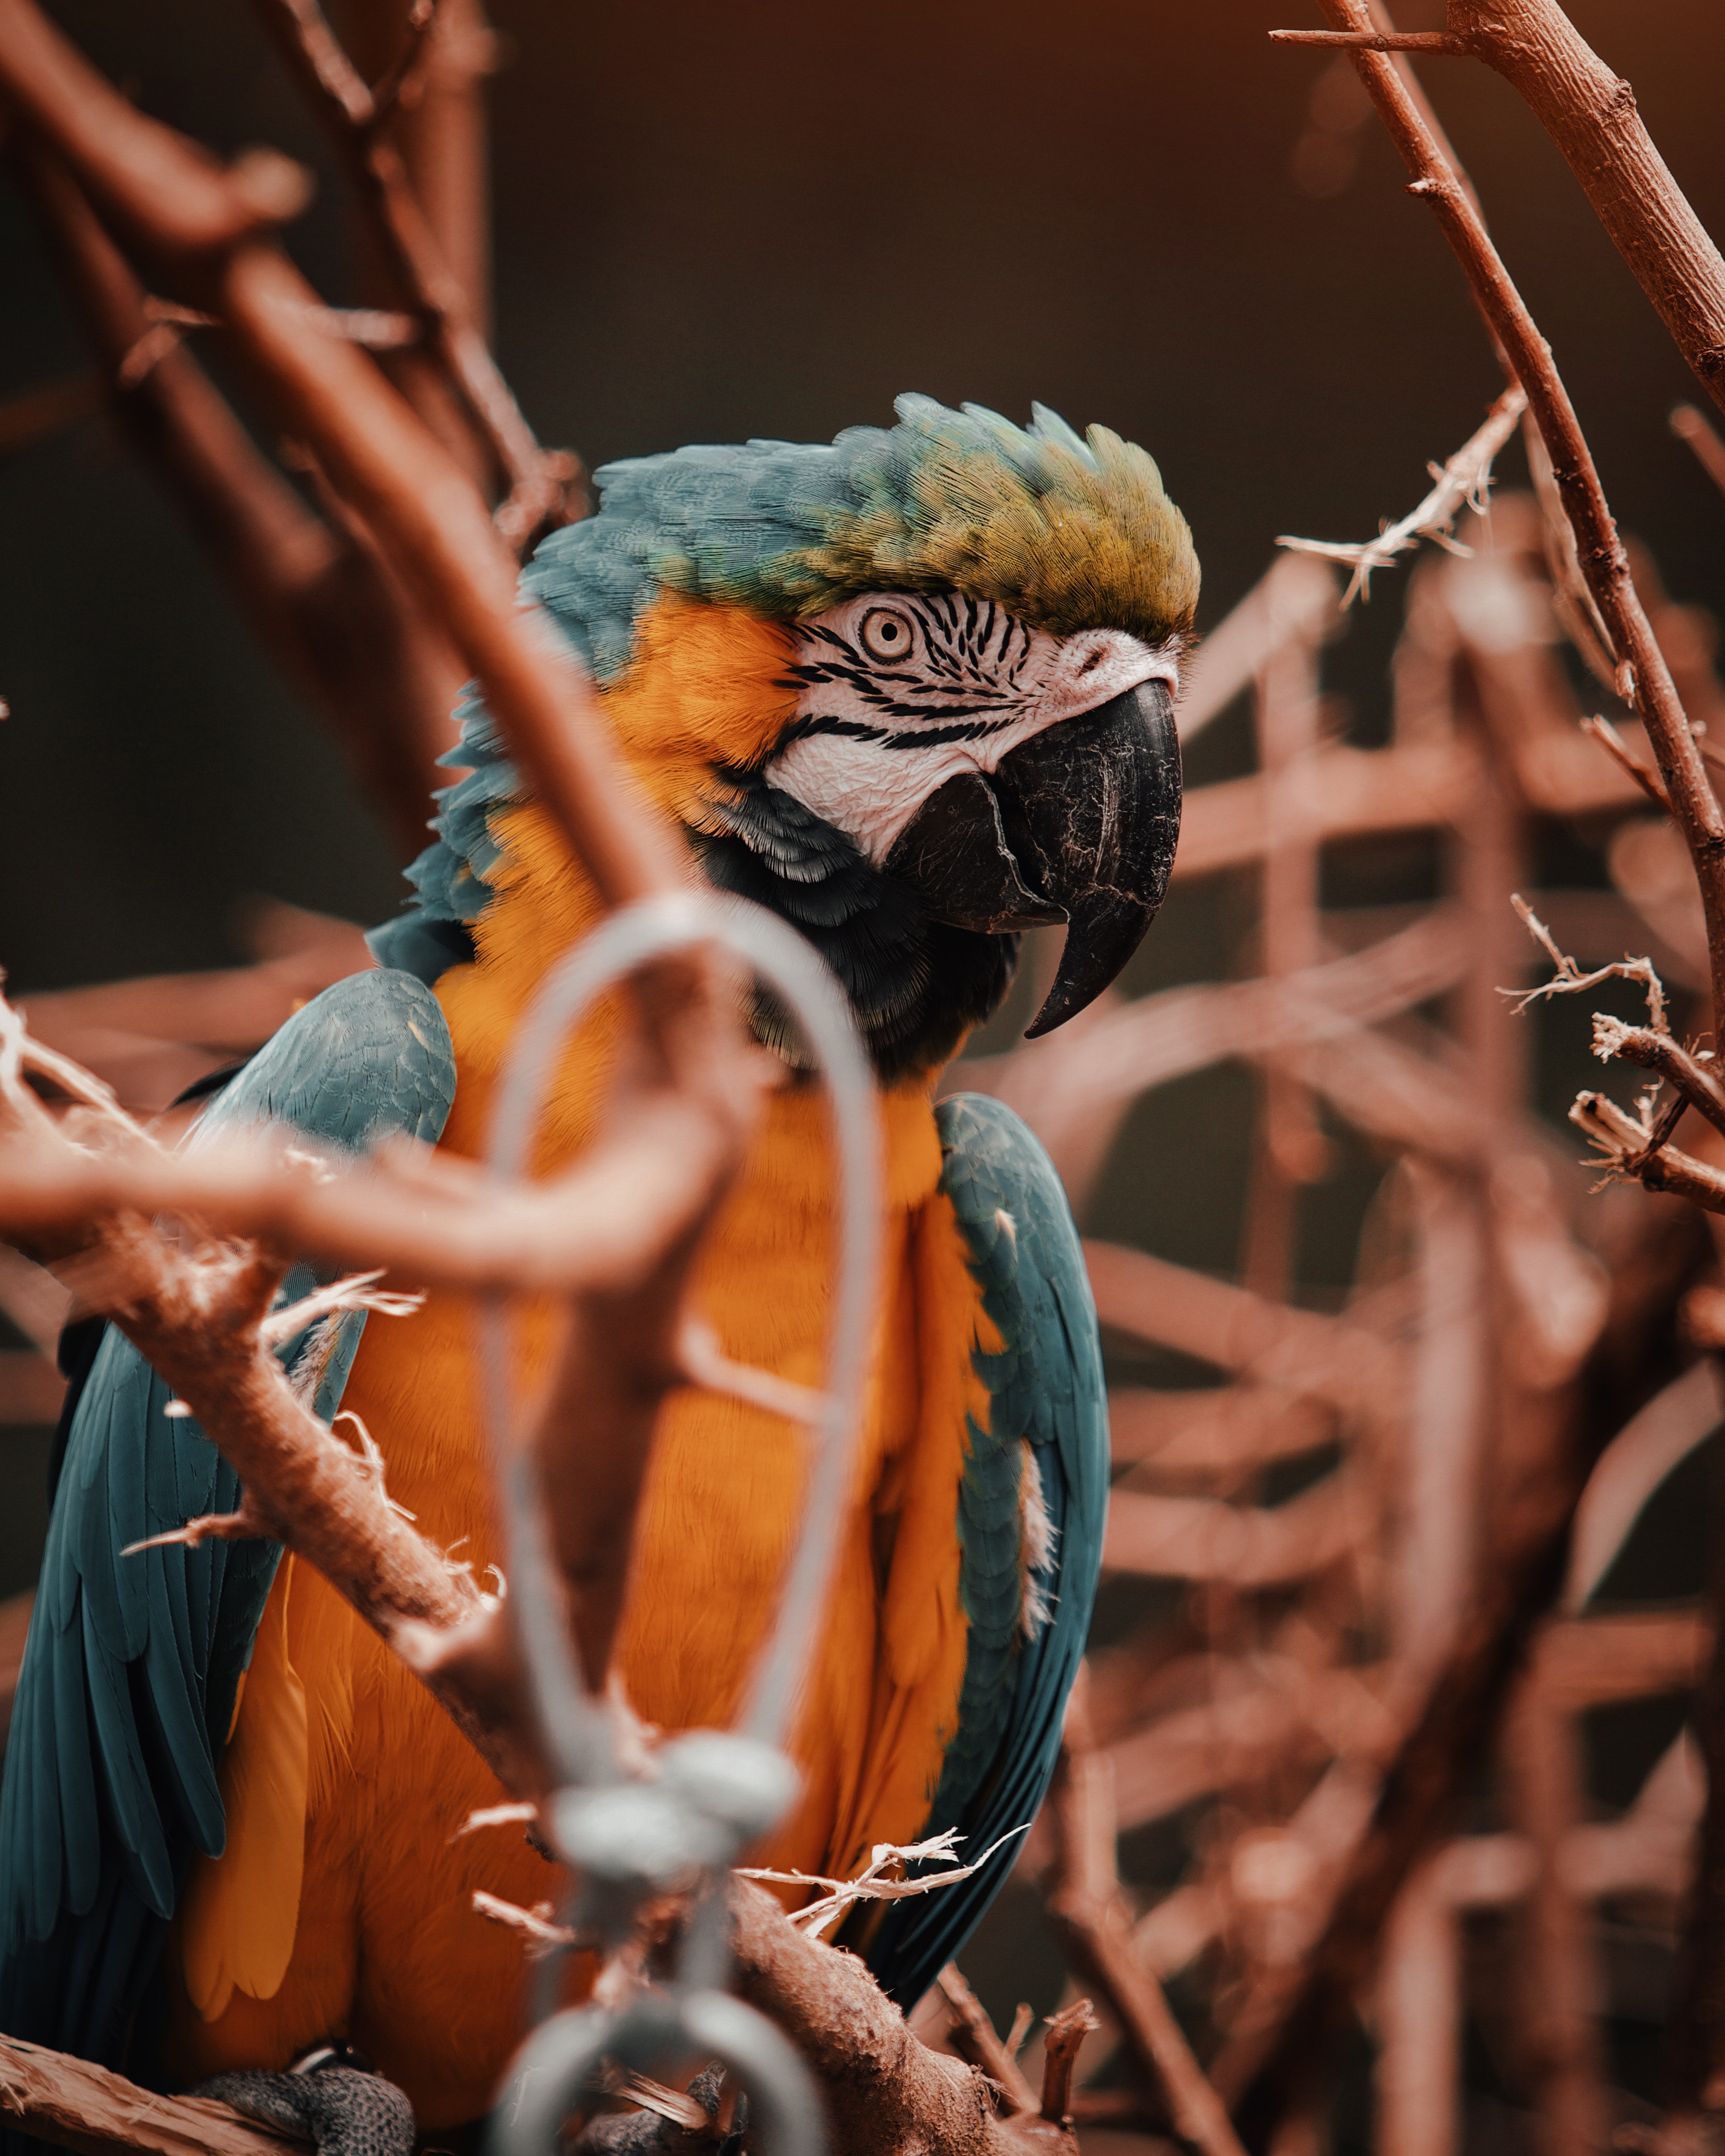 96611 download wallpaper Animals, Parrots, Macaw, Bird, Multicolored, Motley, Branches screensavers and pictures for free